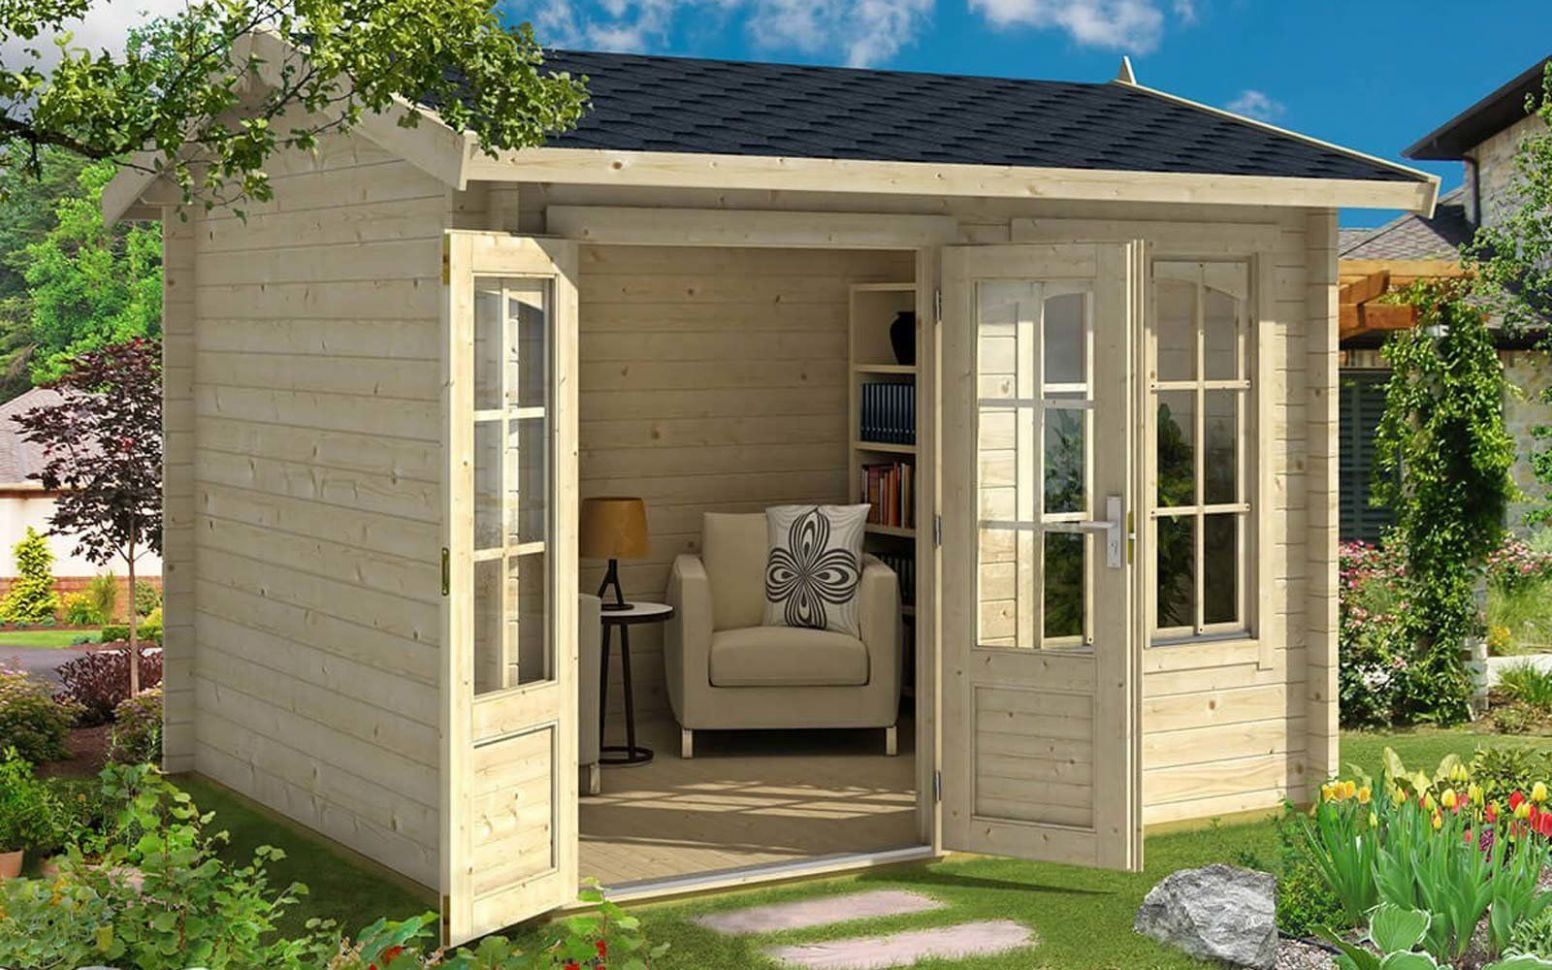 You Really Can Buy a Tiny House on Amazon for $11,11 — Here Are 11 ..